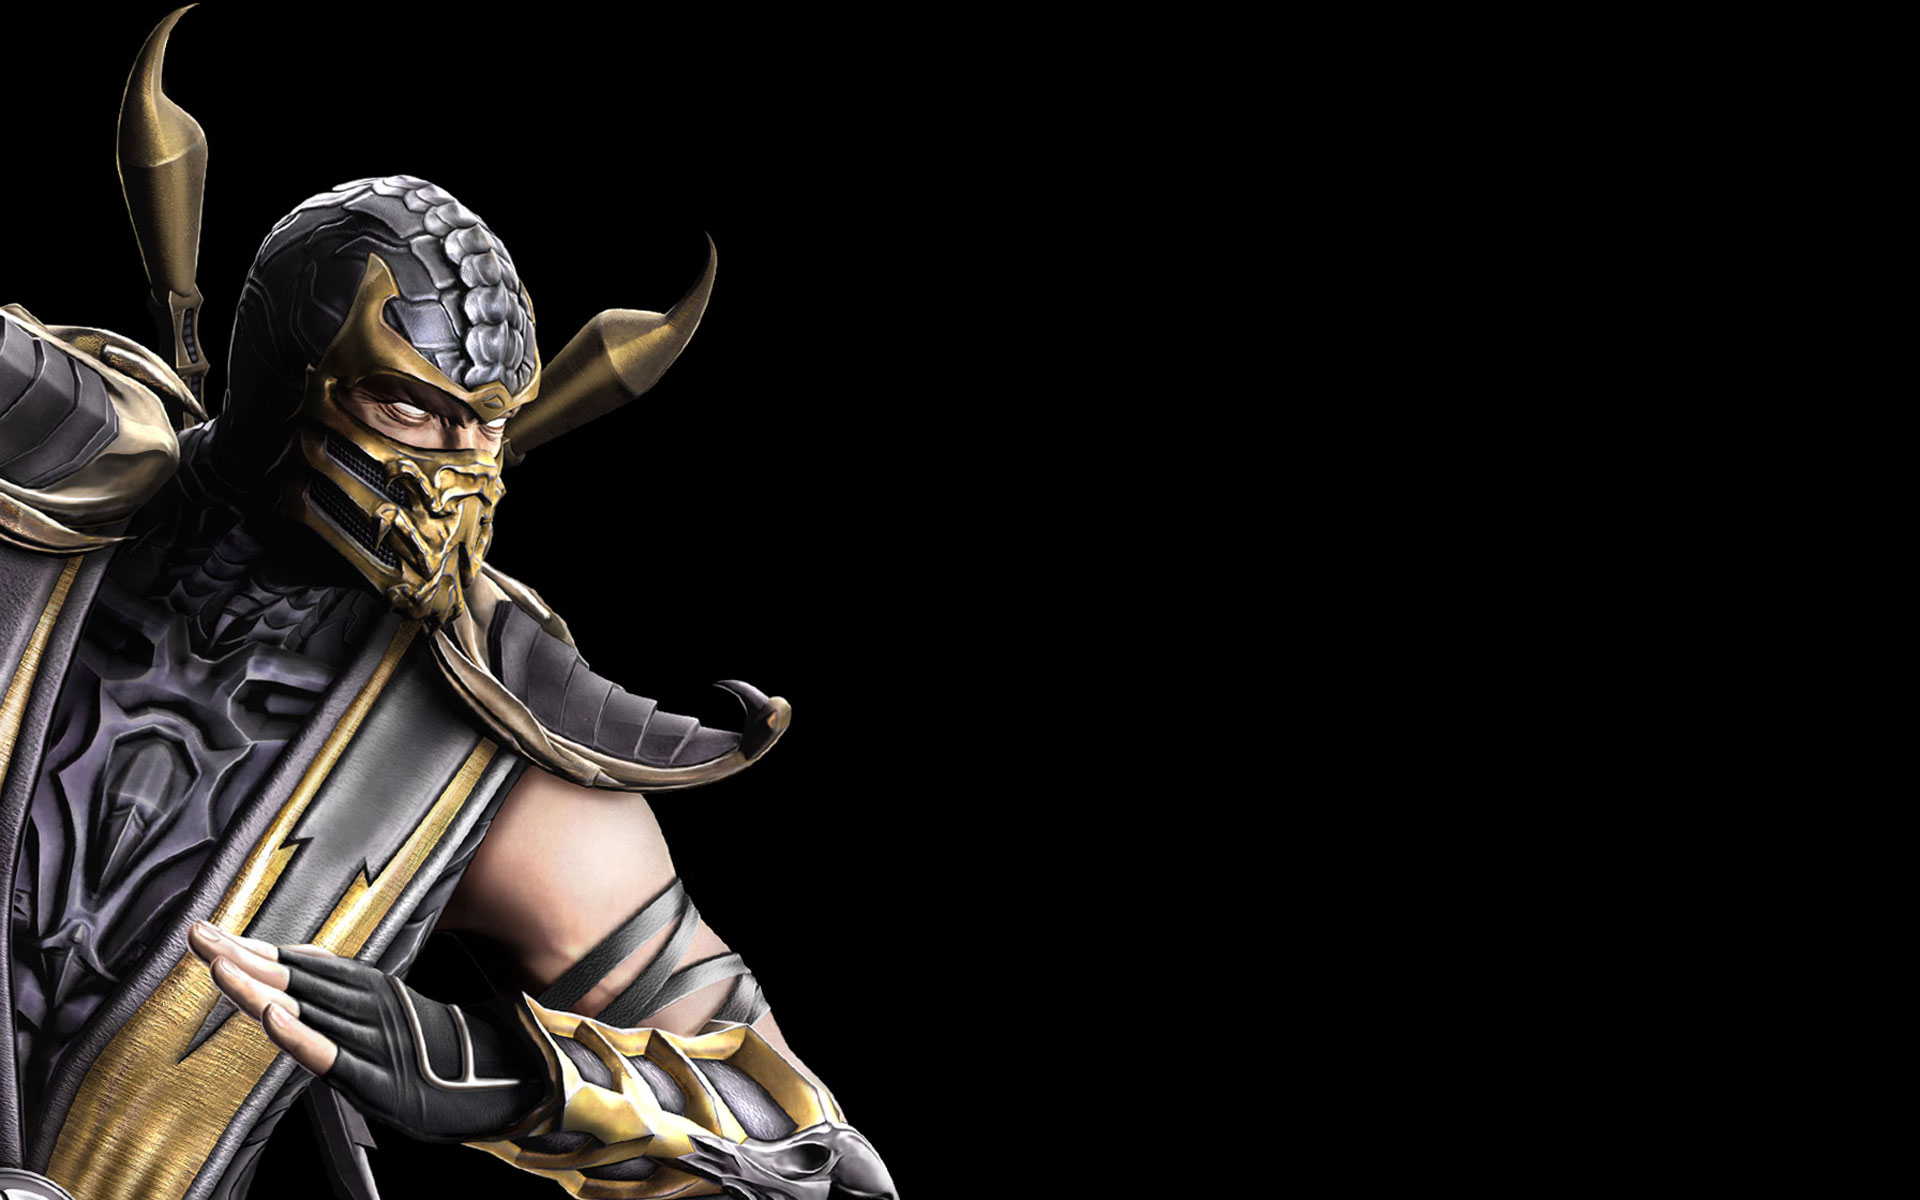 Mortal Kombat 9 wallpaper Scorpion Wallpaper Mortal Kombat 9 hd 1920x1200